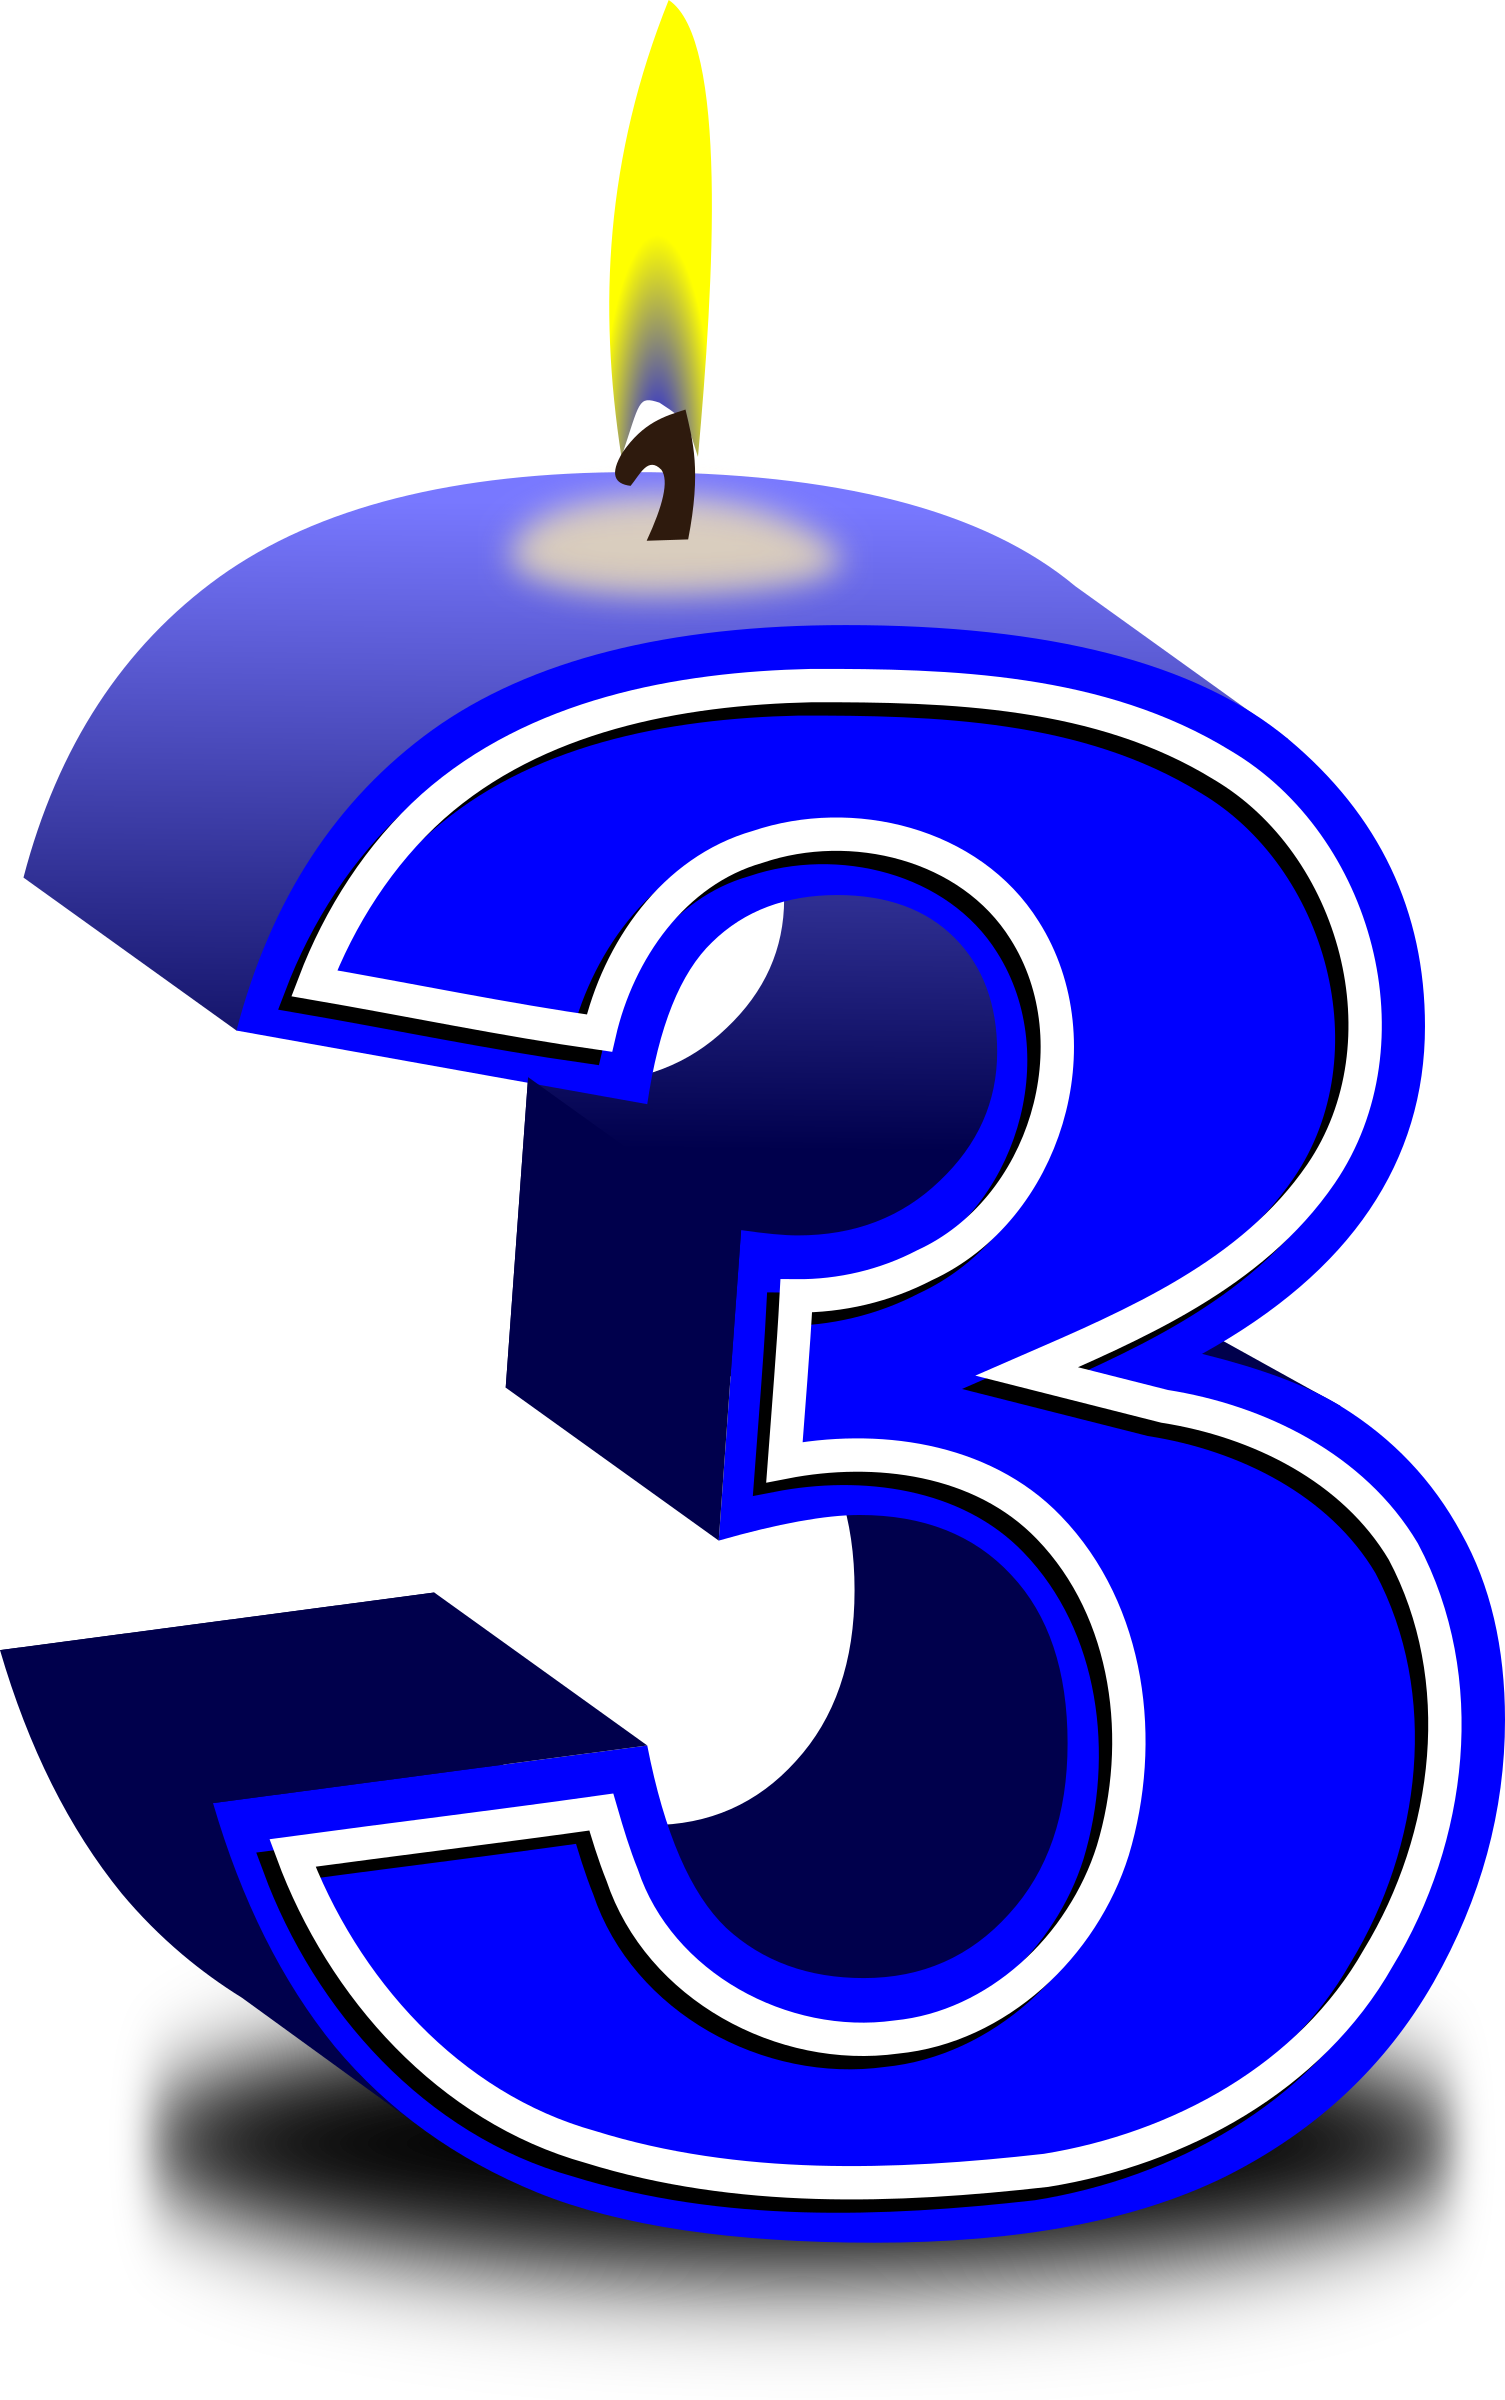 Number 3 Clipart Blue  Number 3 Blue Transparent Free For Download On Webstockreview 2020